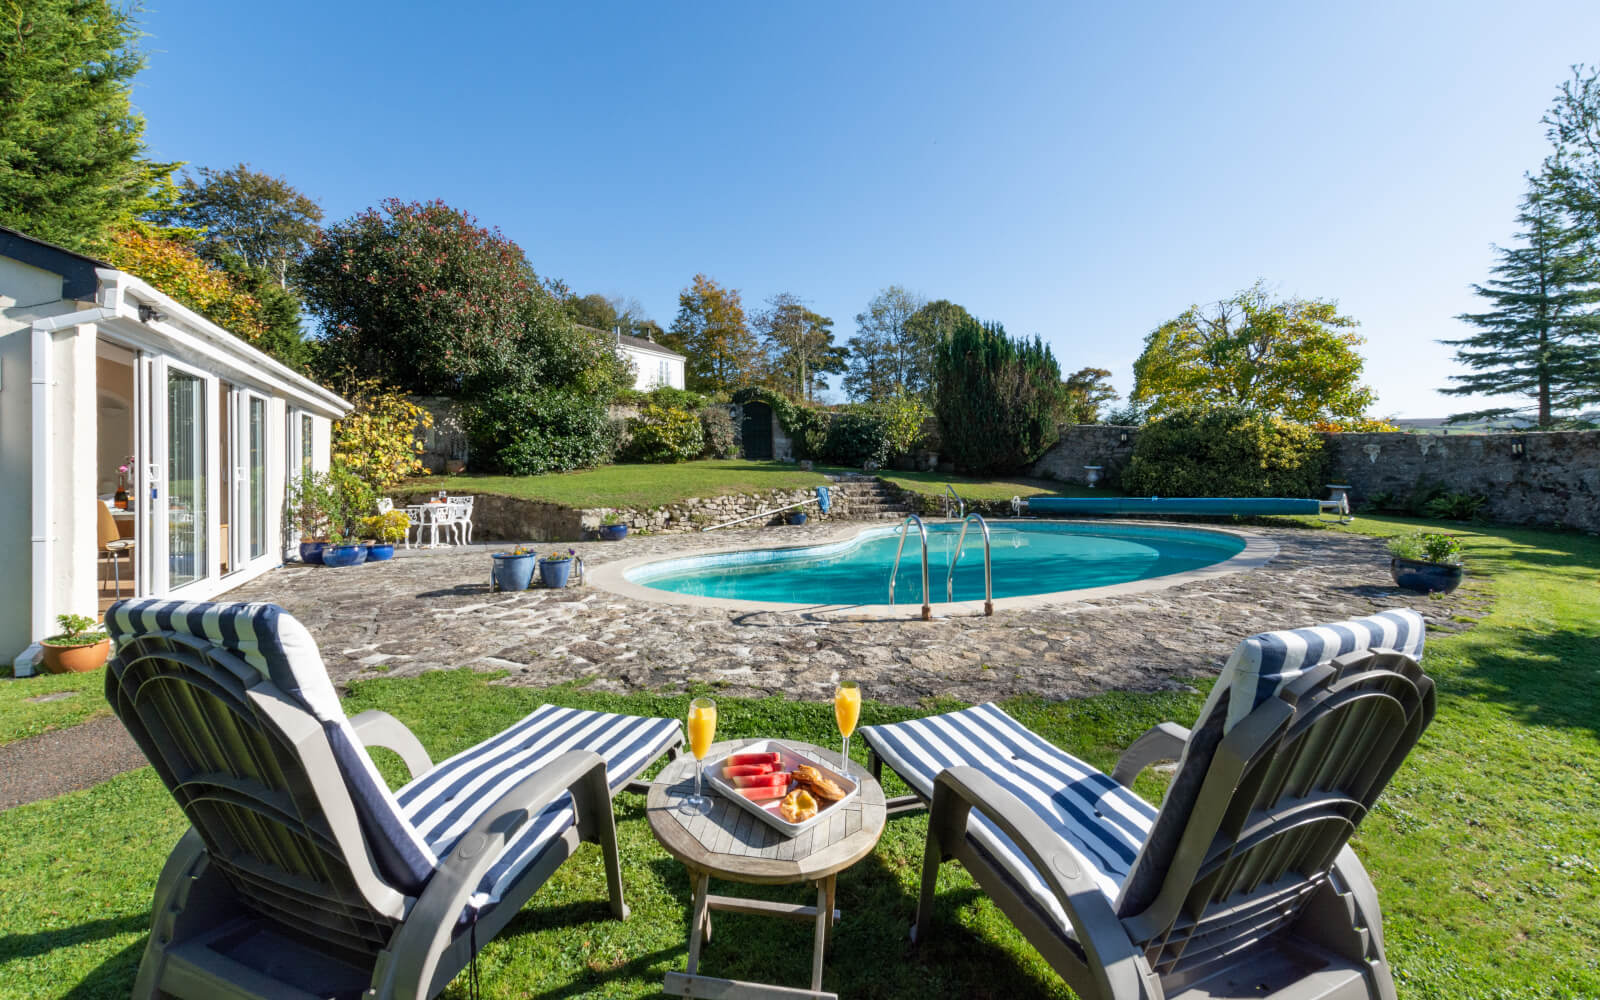 Swimming Pool Self Catering Holidays In Llanarthney - Save up to 60%